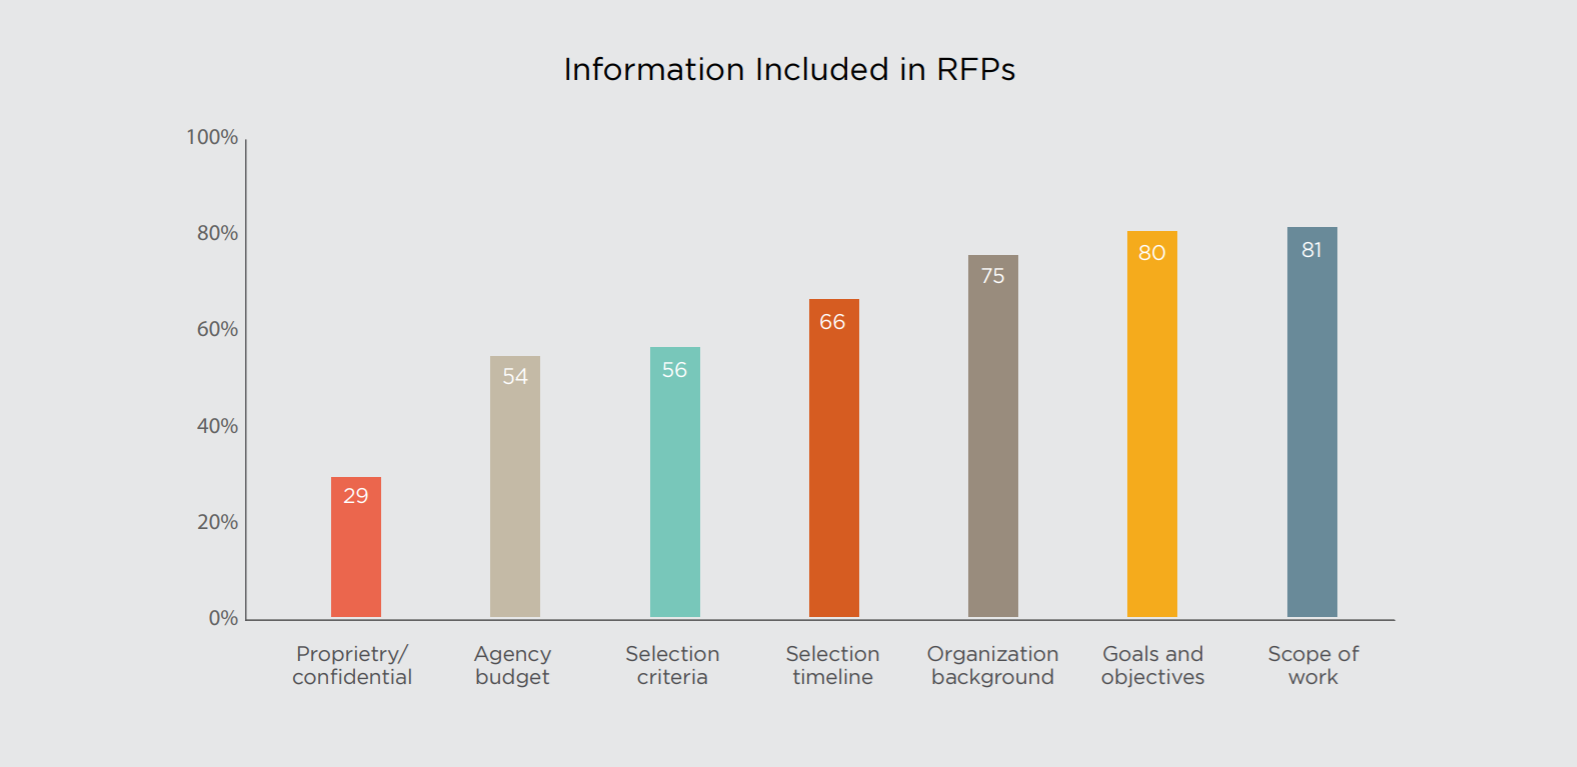 What information do companies request in RFPs?